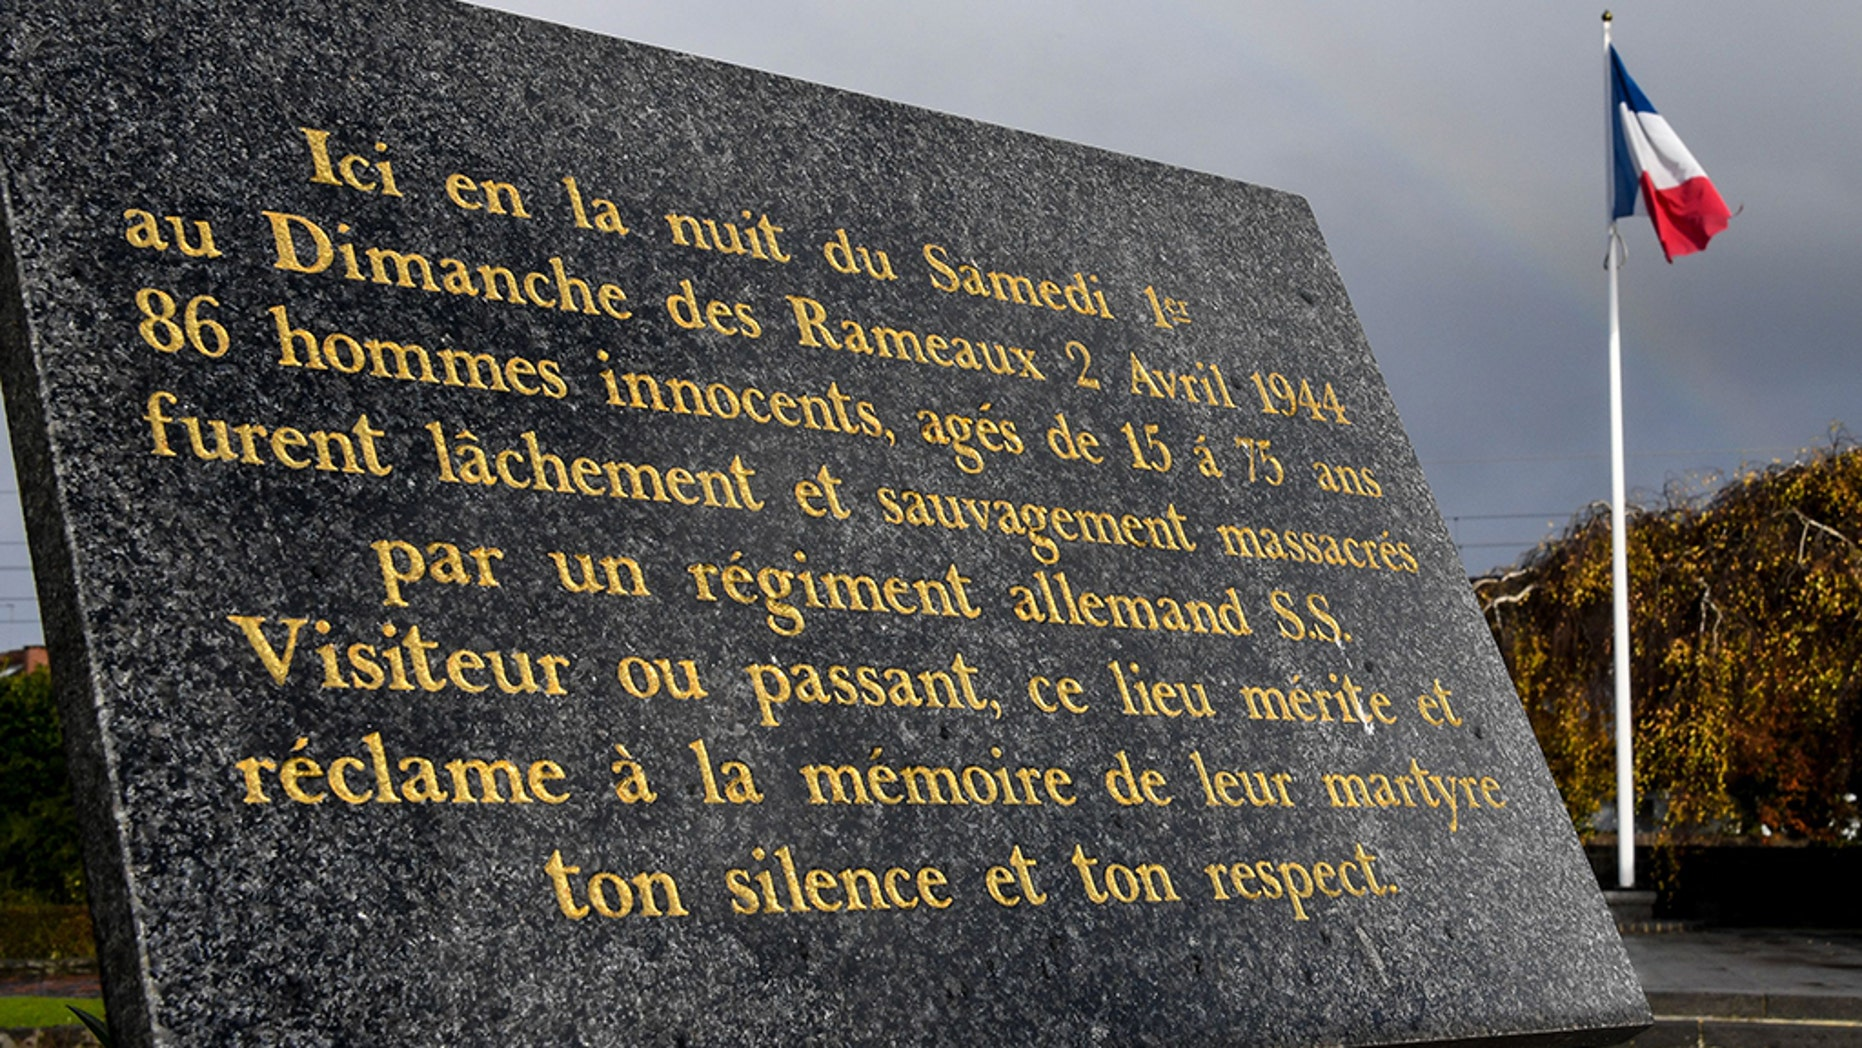 A commemorative plaque is pictured on November 13, 2017 in Villeneuve-d'Ascq, northern France, reminding of the April 2, 1944 WWII massacre of 86 civilians by a Nazi Germany regiment. After a 1949 trial that ended with the acquittal in 1955 of 17 Nazi SS officers and soldiers, victims' relatives are hoping a trial could be re-opened by Germany's legal system.